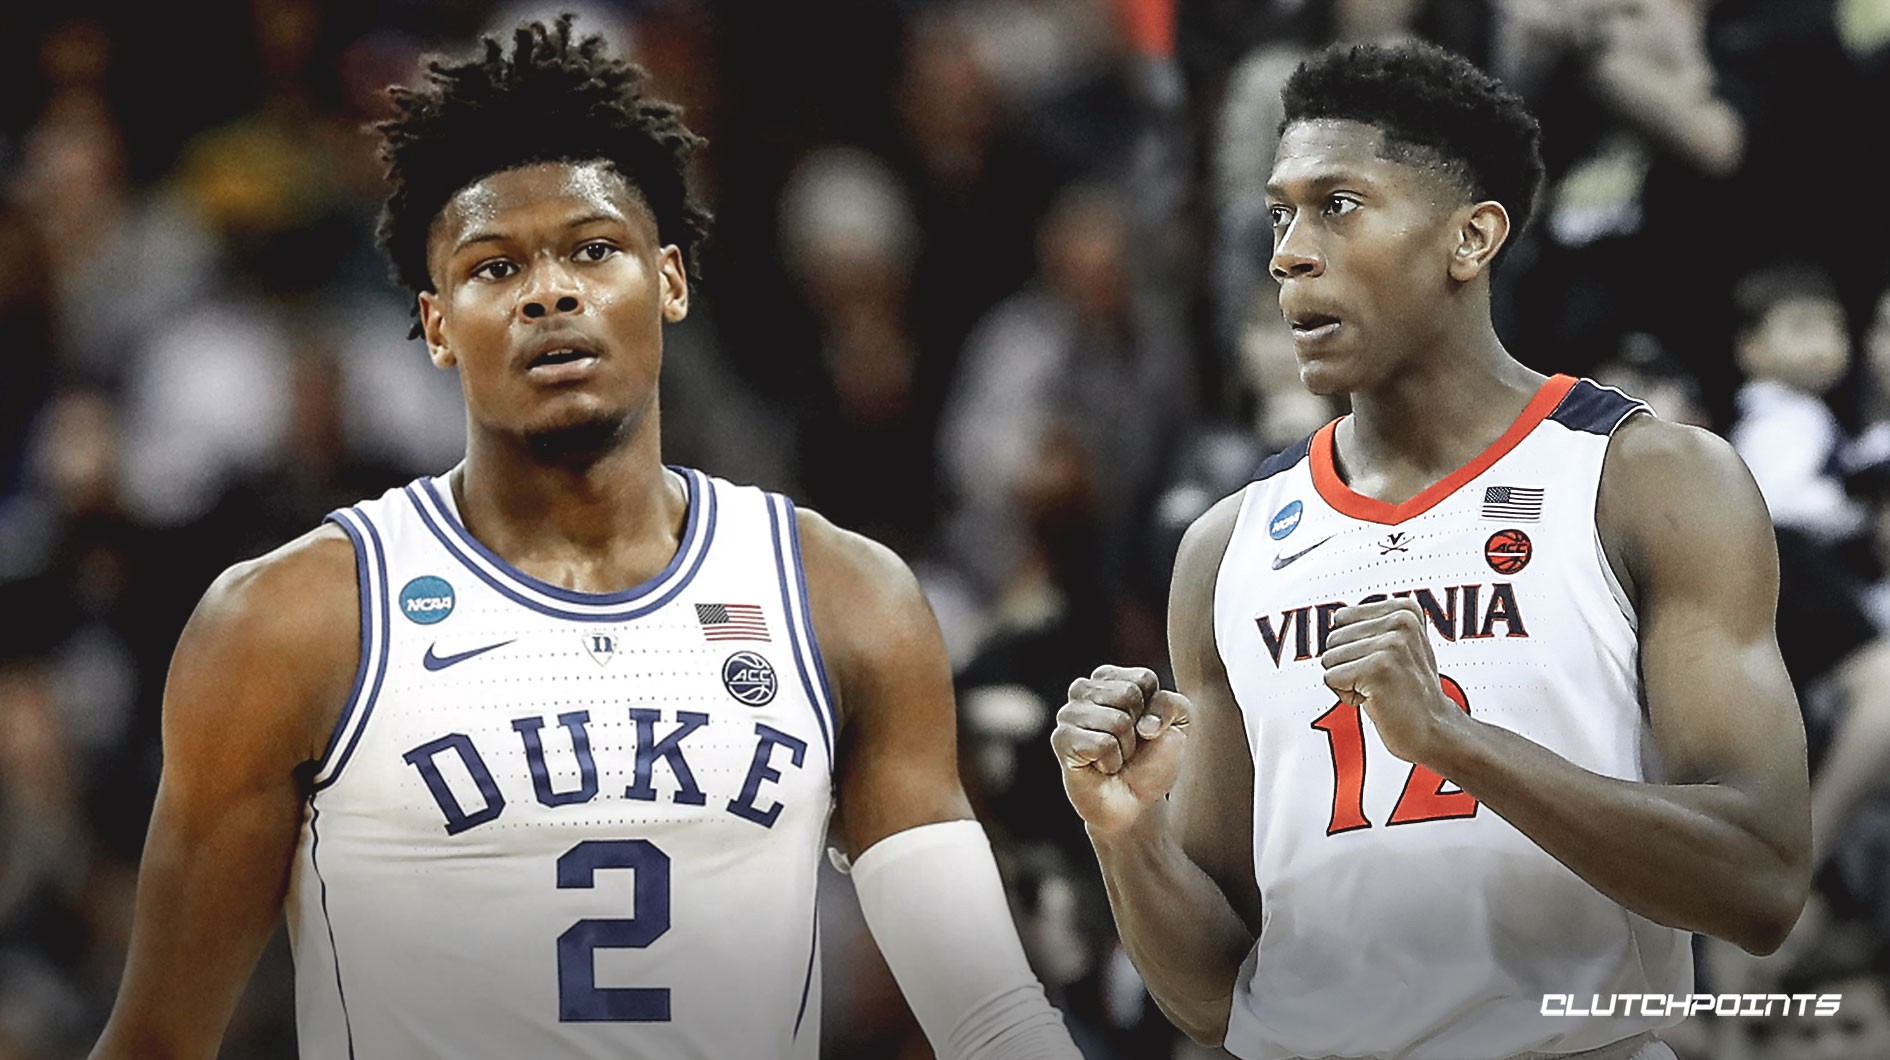 2019 NBA Draft — Ranking the Small Forwards - SportsRaid